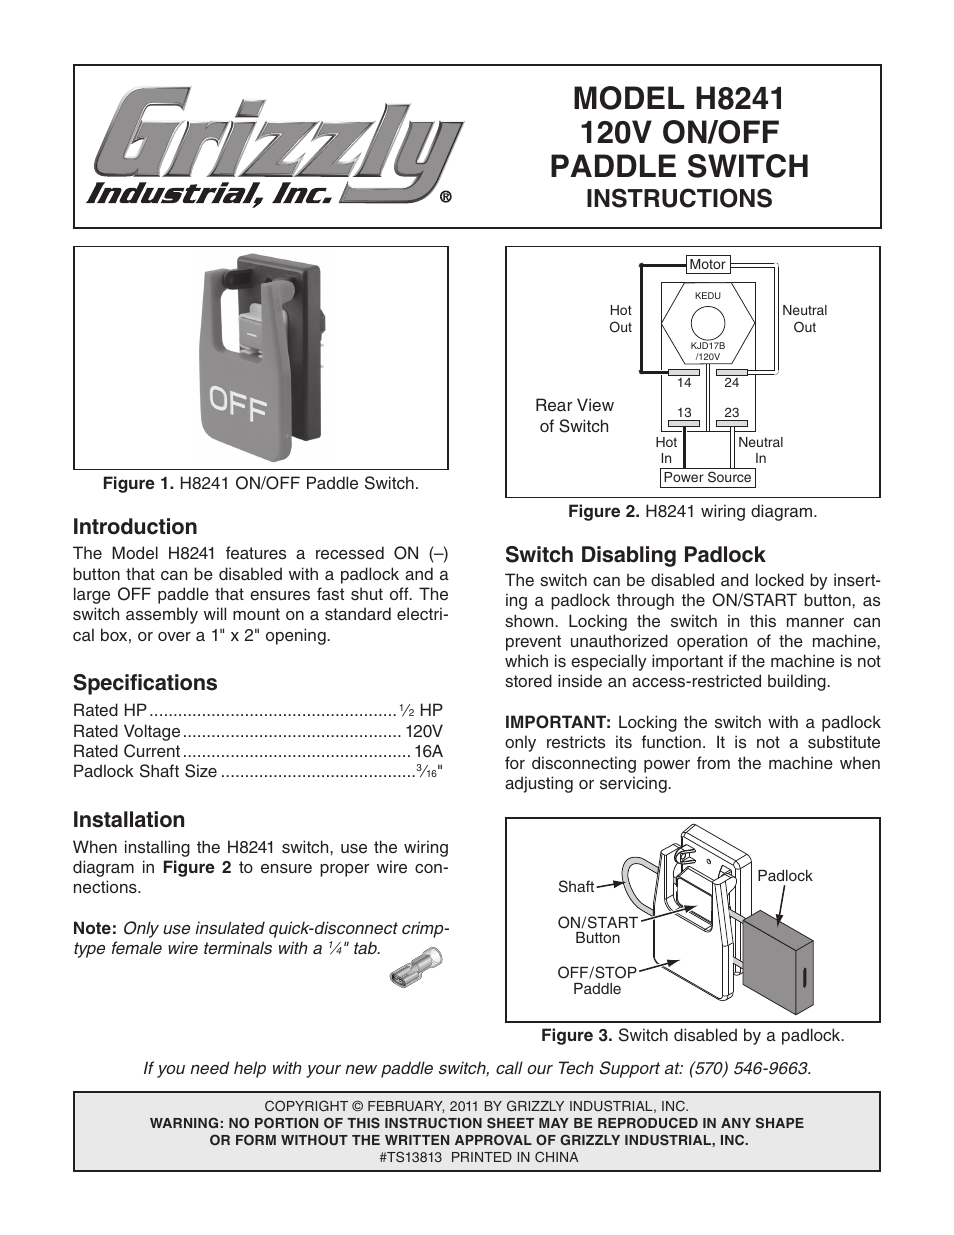 Grizzly H8241 User Manual